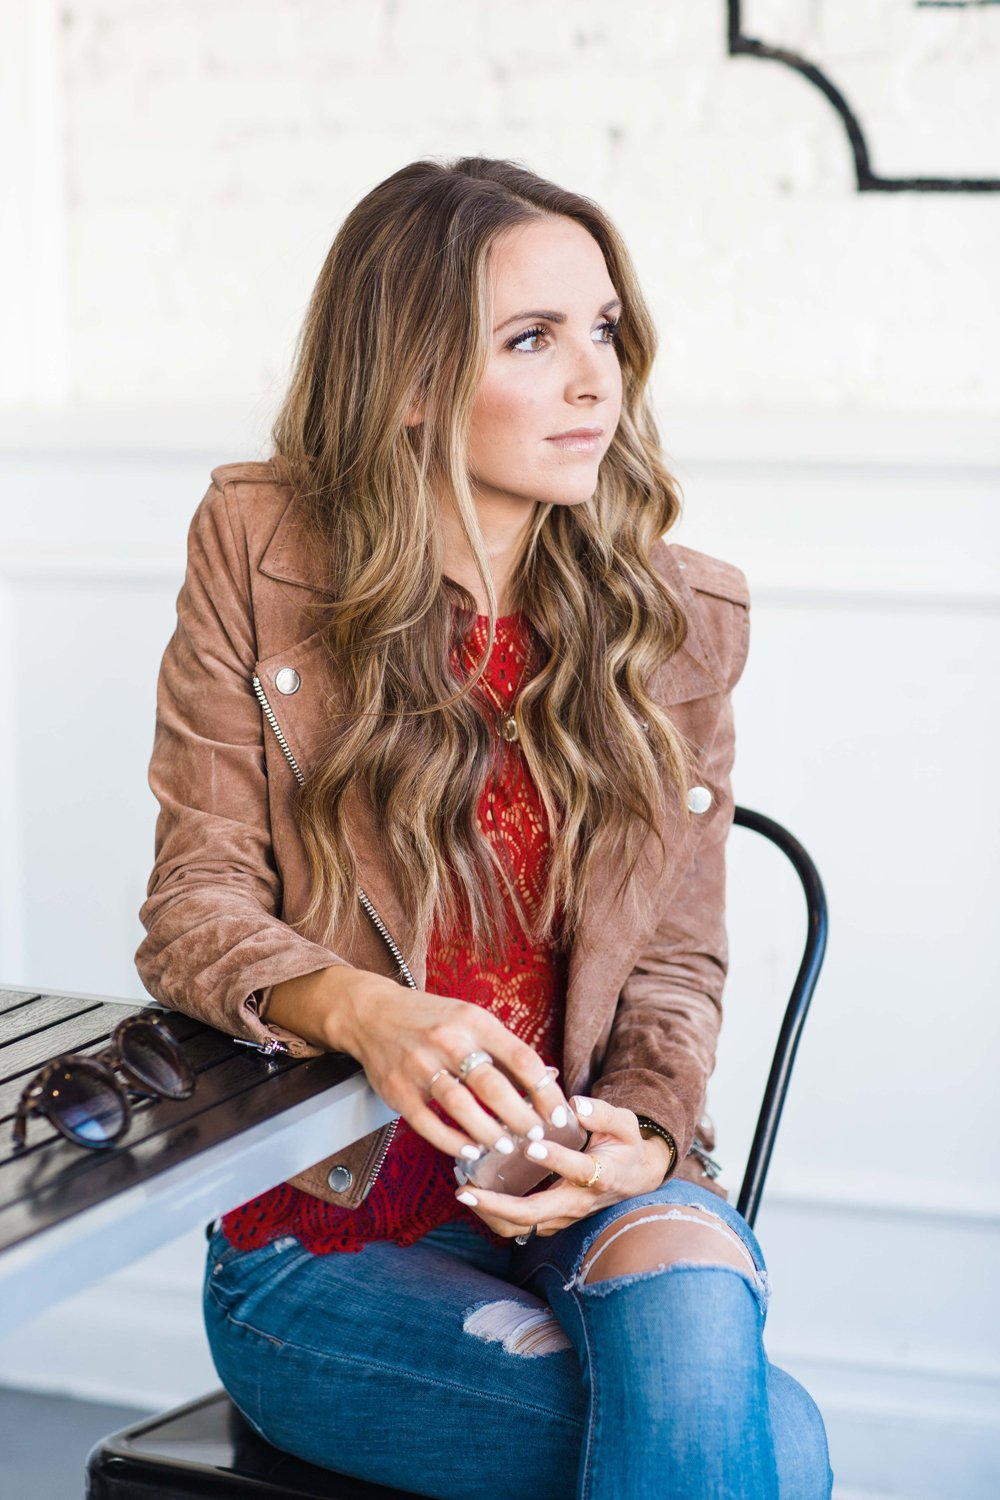 Merrick's Art Suede Jacket and Lace Top